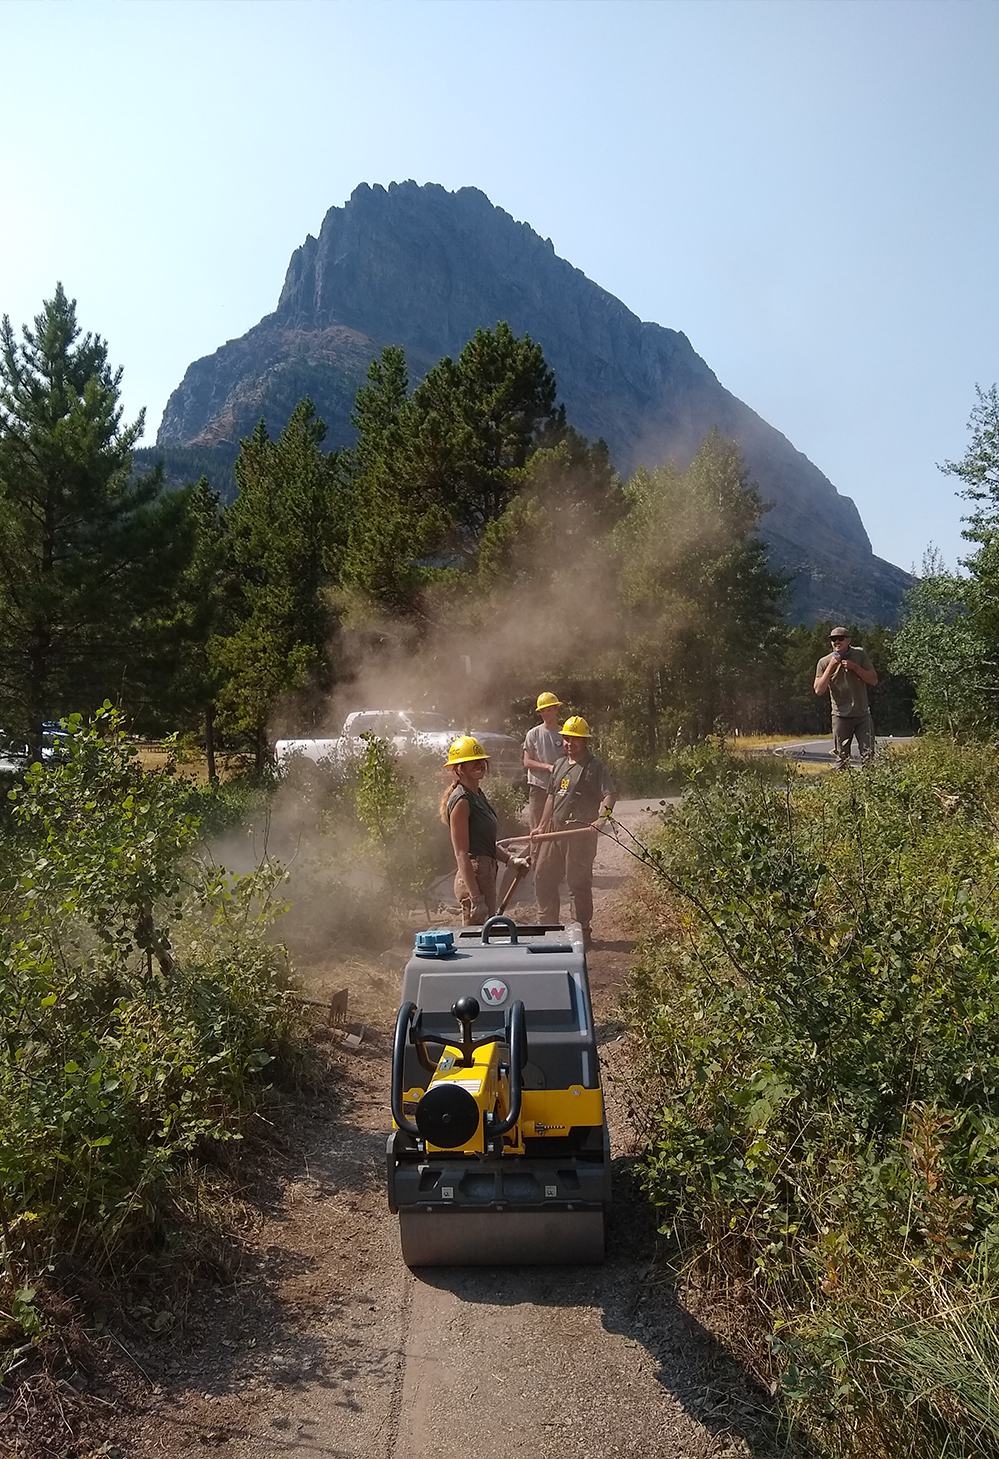 A group of trail crew workers stand near a drum roller machine to flatten a trail with a tall mountain in the background